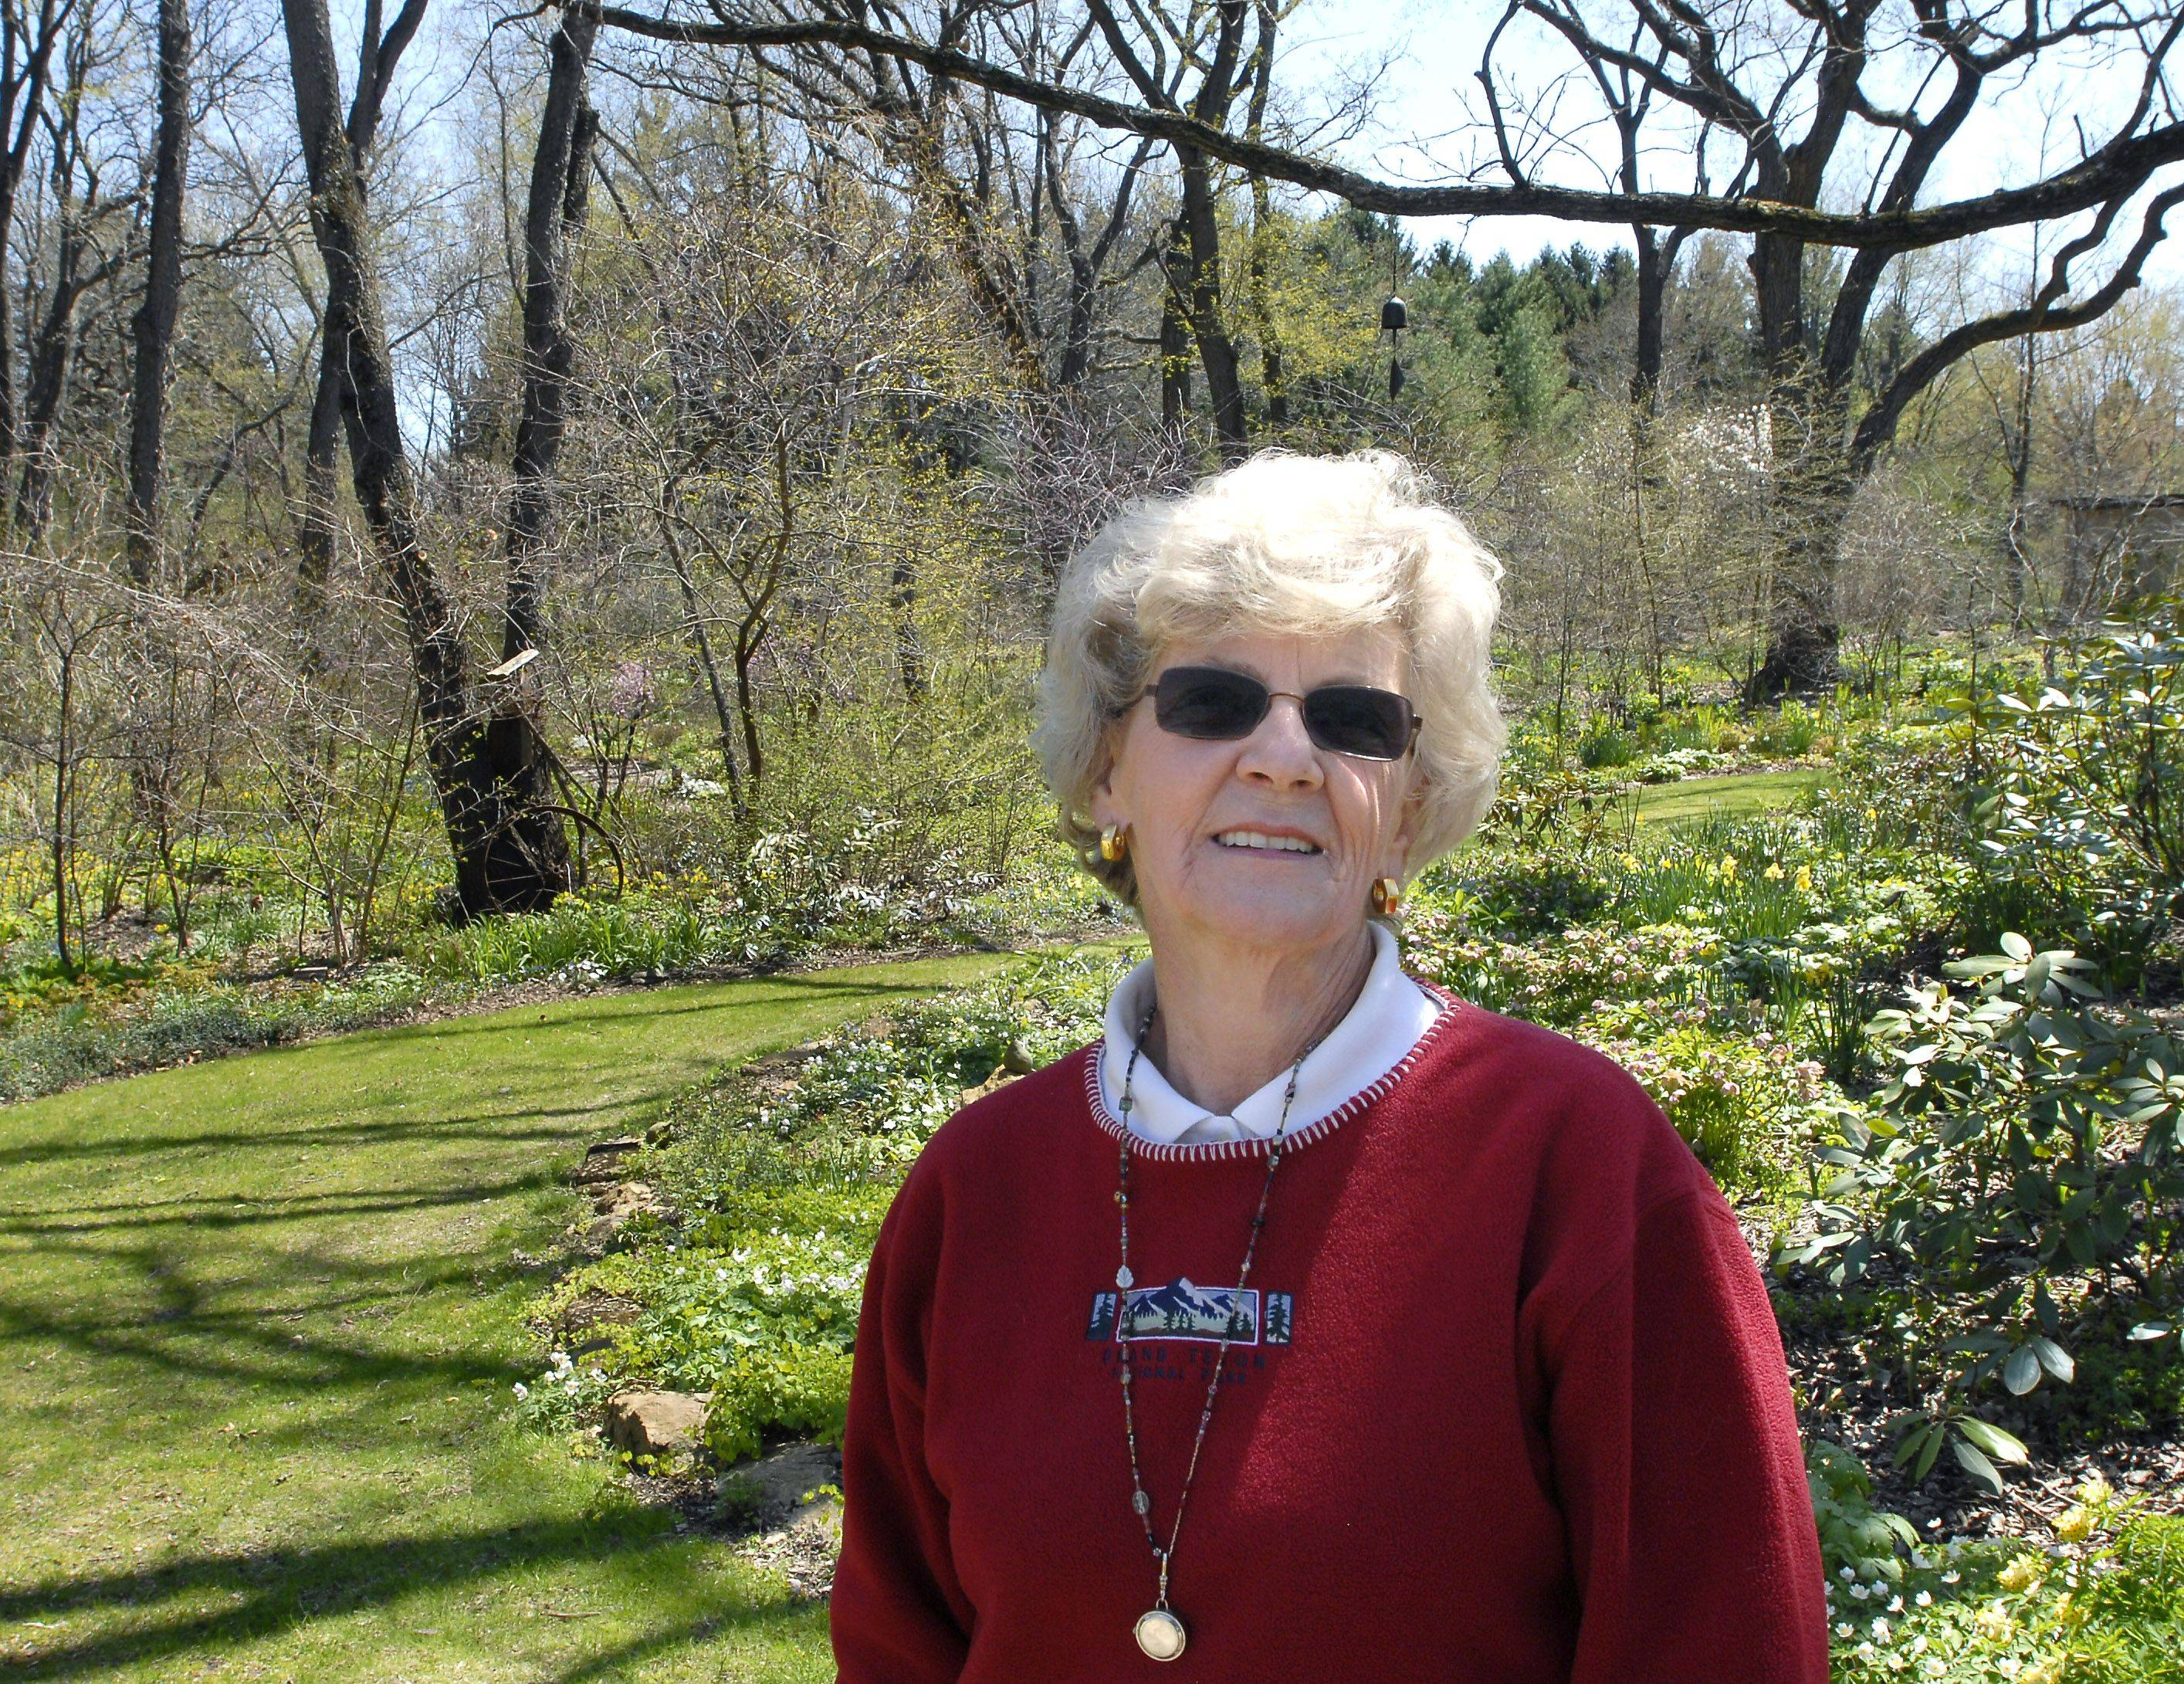 Twenty years of work have given Barbara Wetzel of Barrington Hills, who has gardened most of her life, 6 acres of beautiful woodland, rock and prairie gardens.